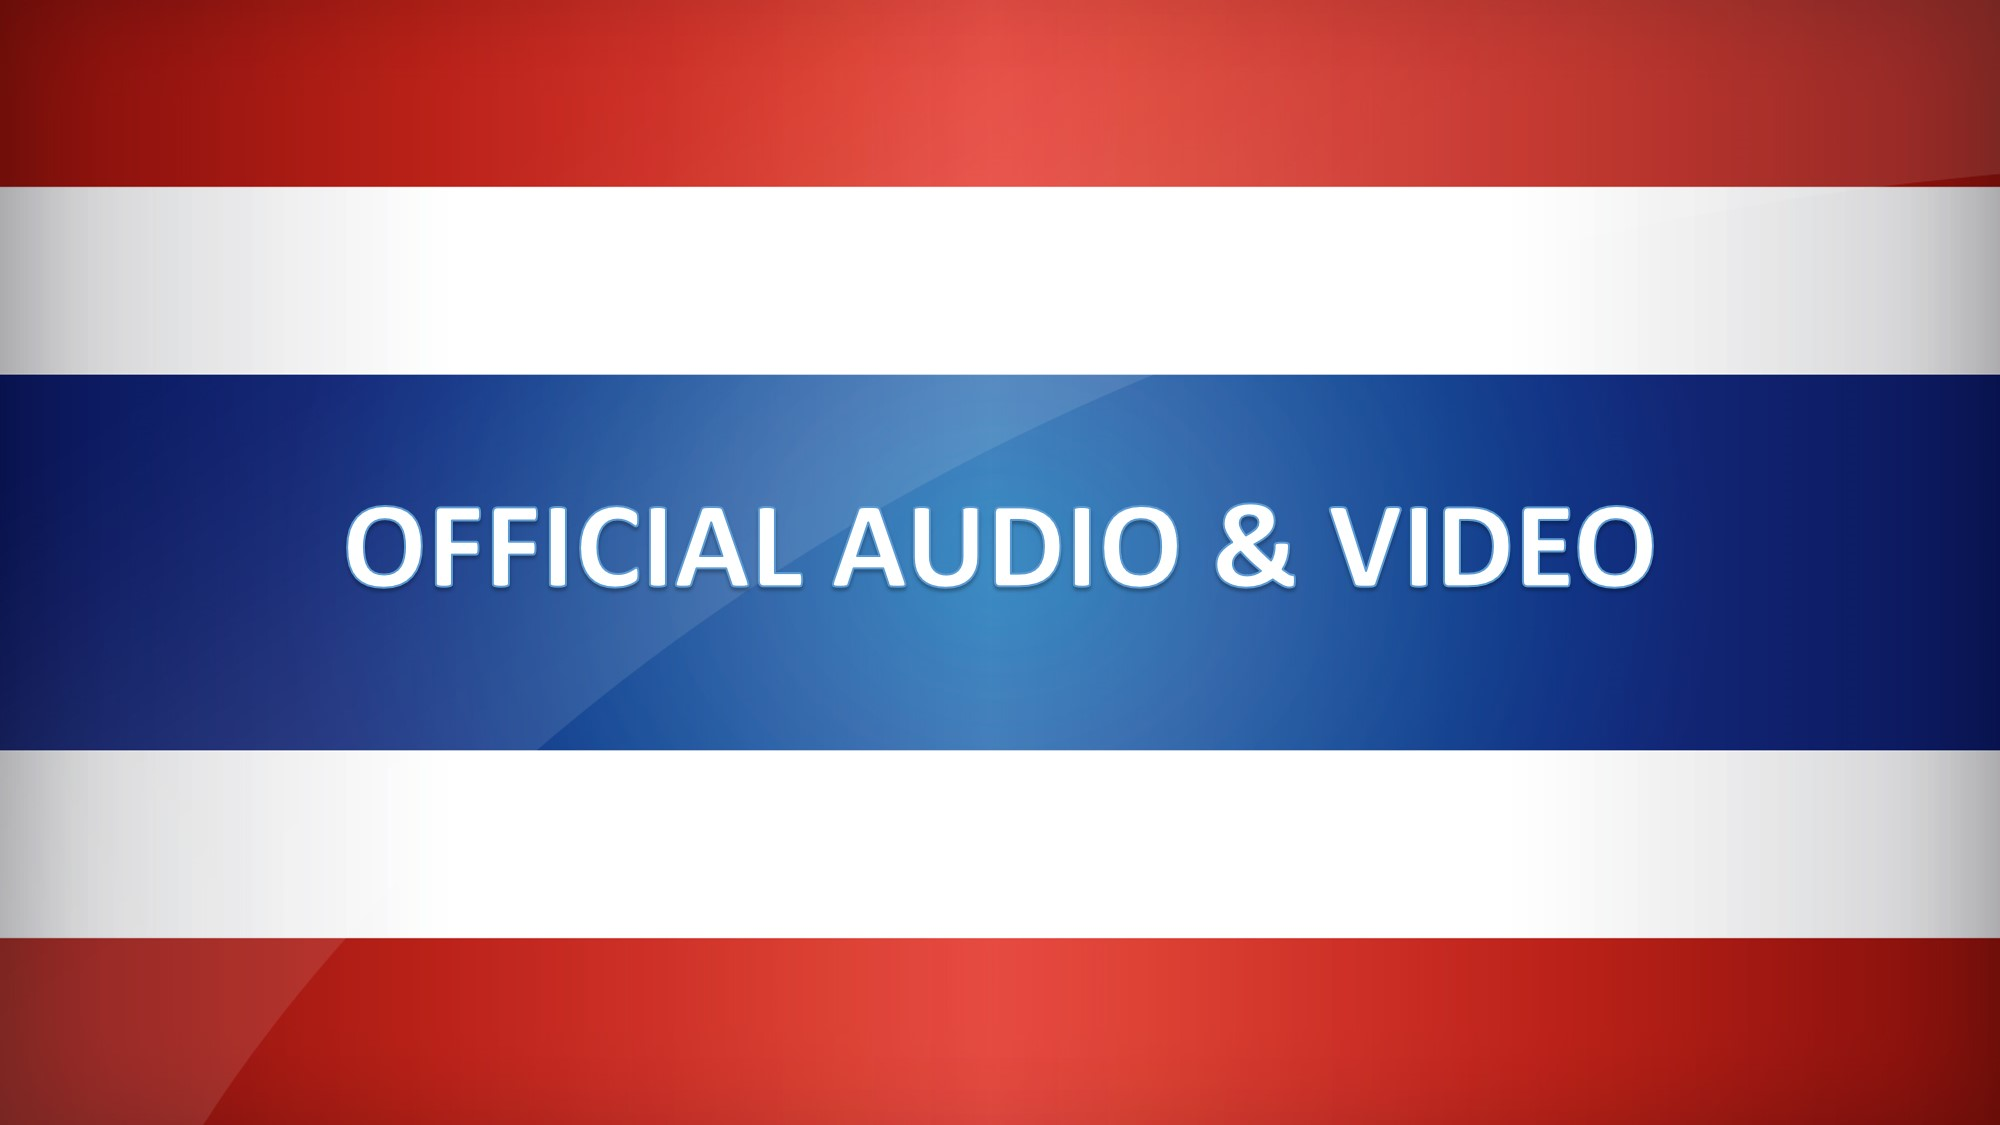 Official Audios & Videos